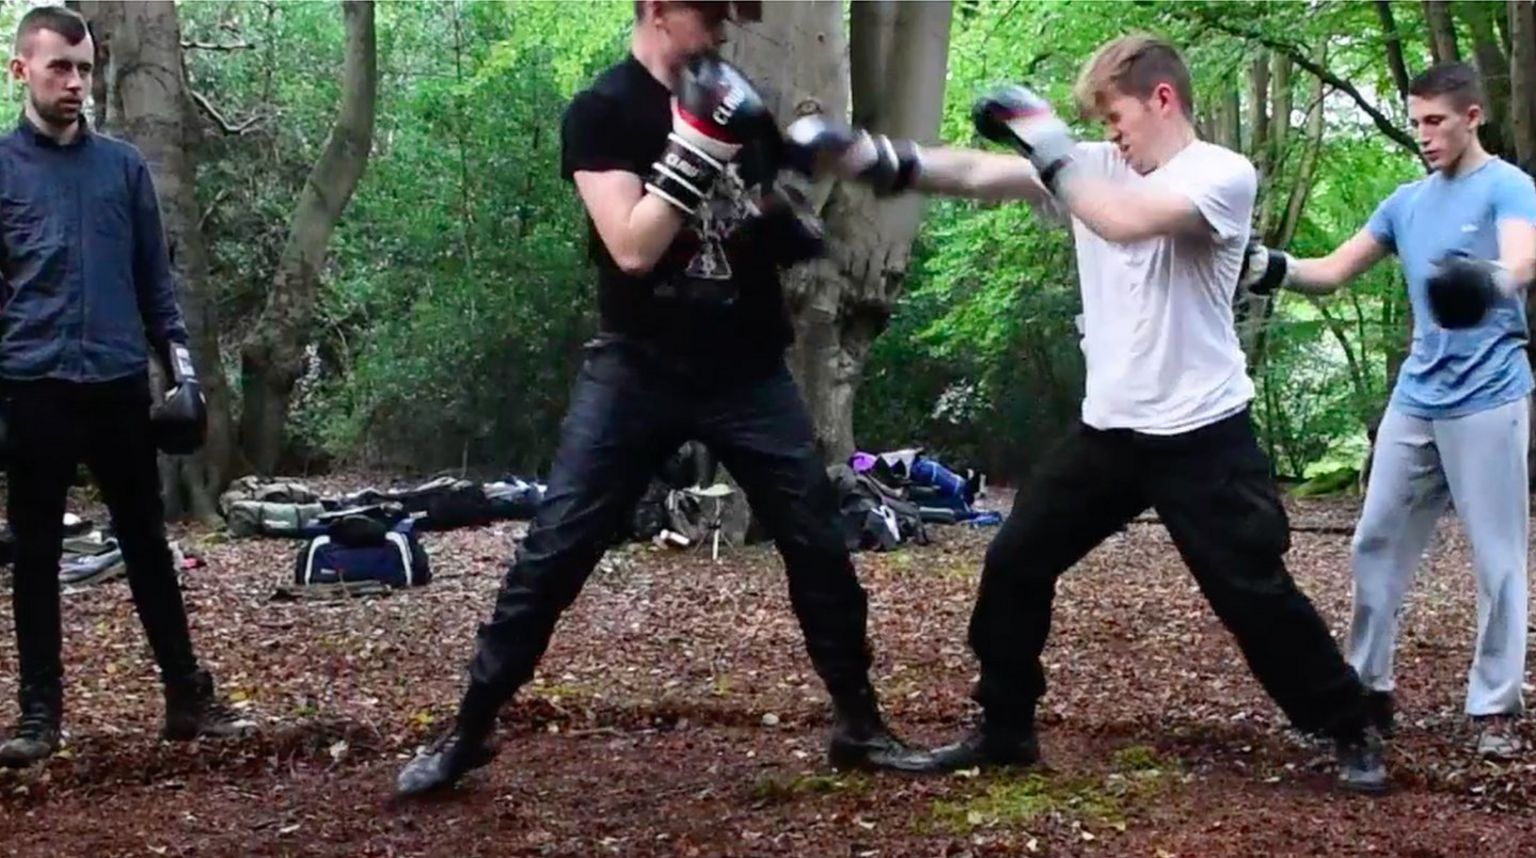 Hannam (in white) sparring with Oskar Dunn-Koczorowski, watched by National Action co-founder Alex Davies in the blue shirt.